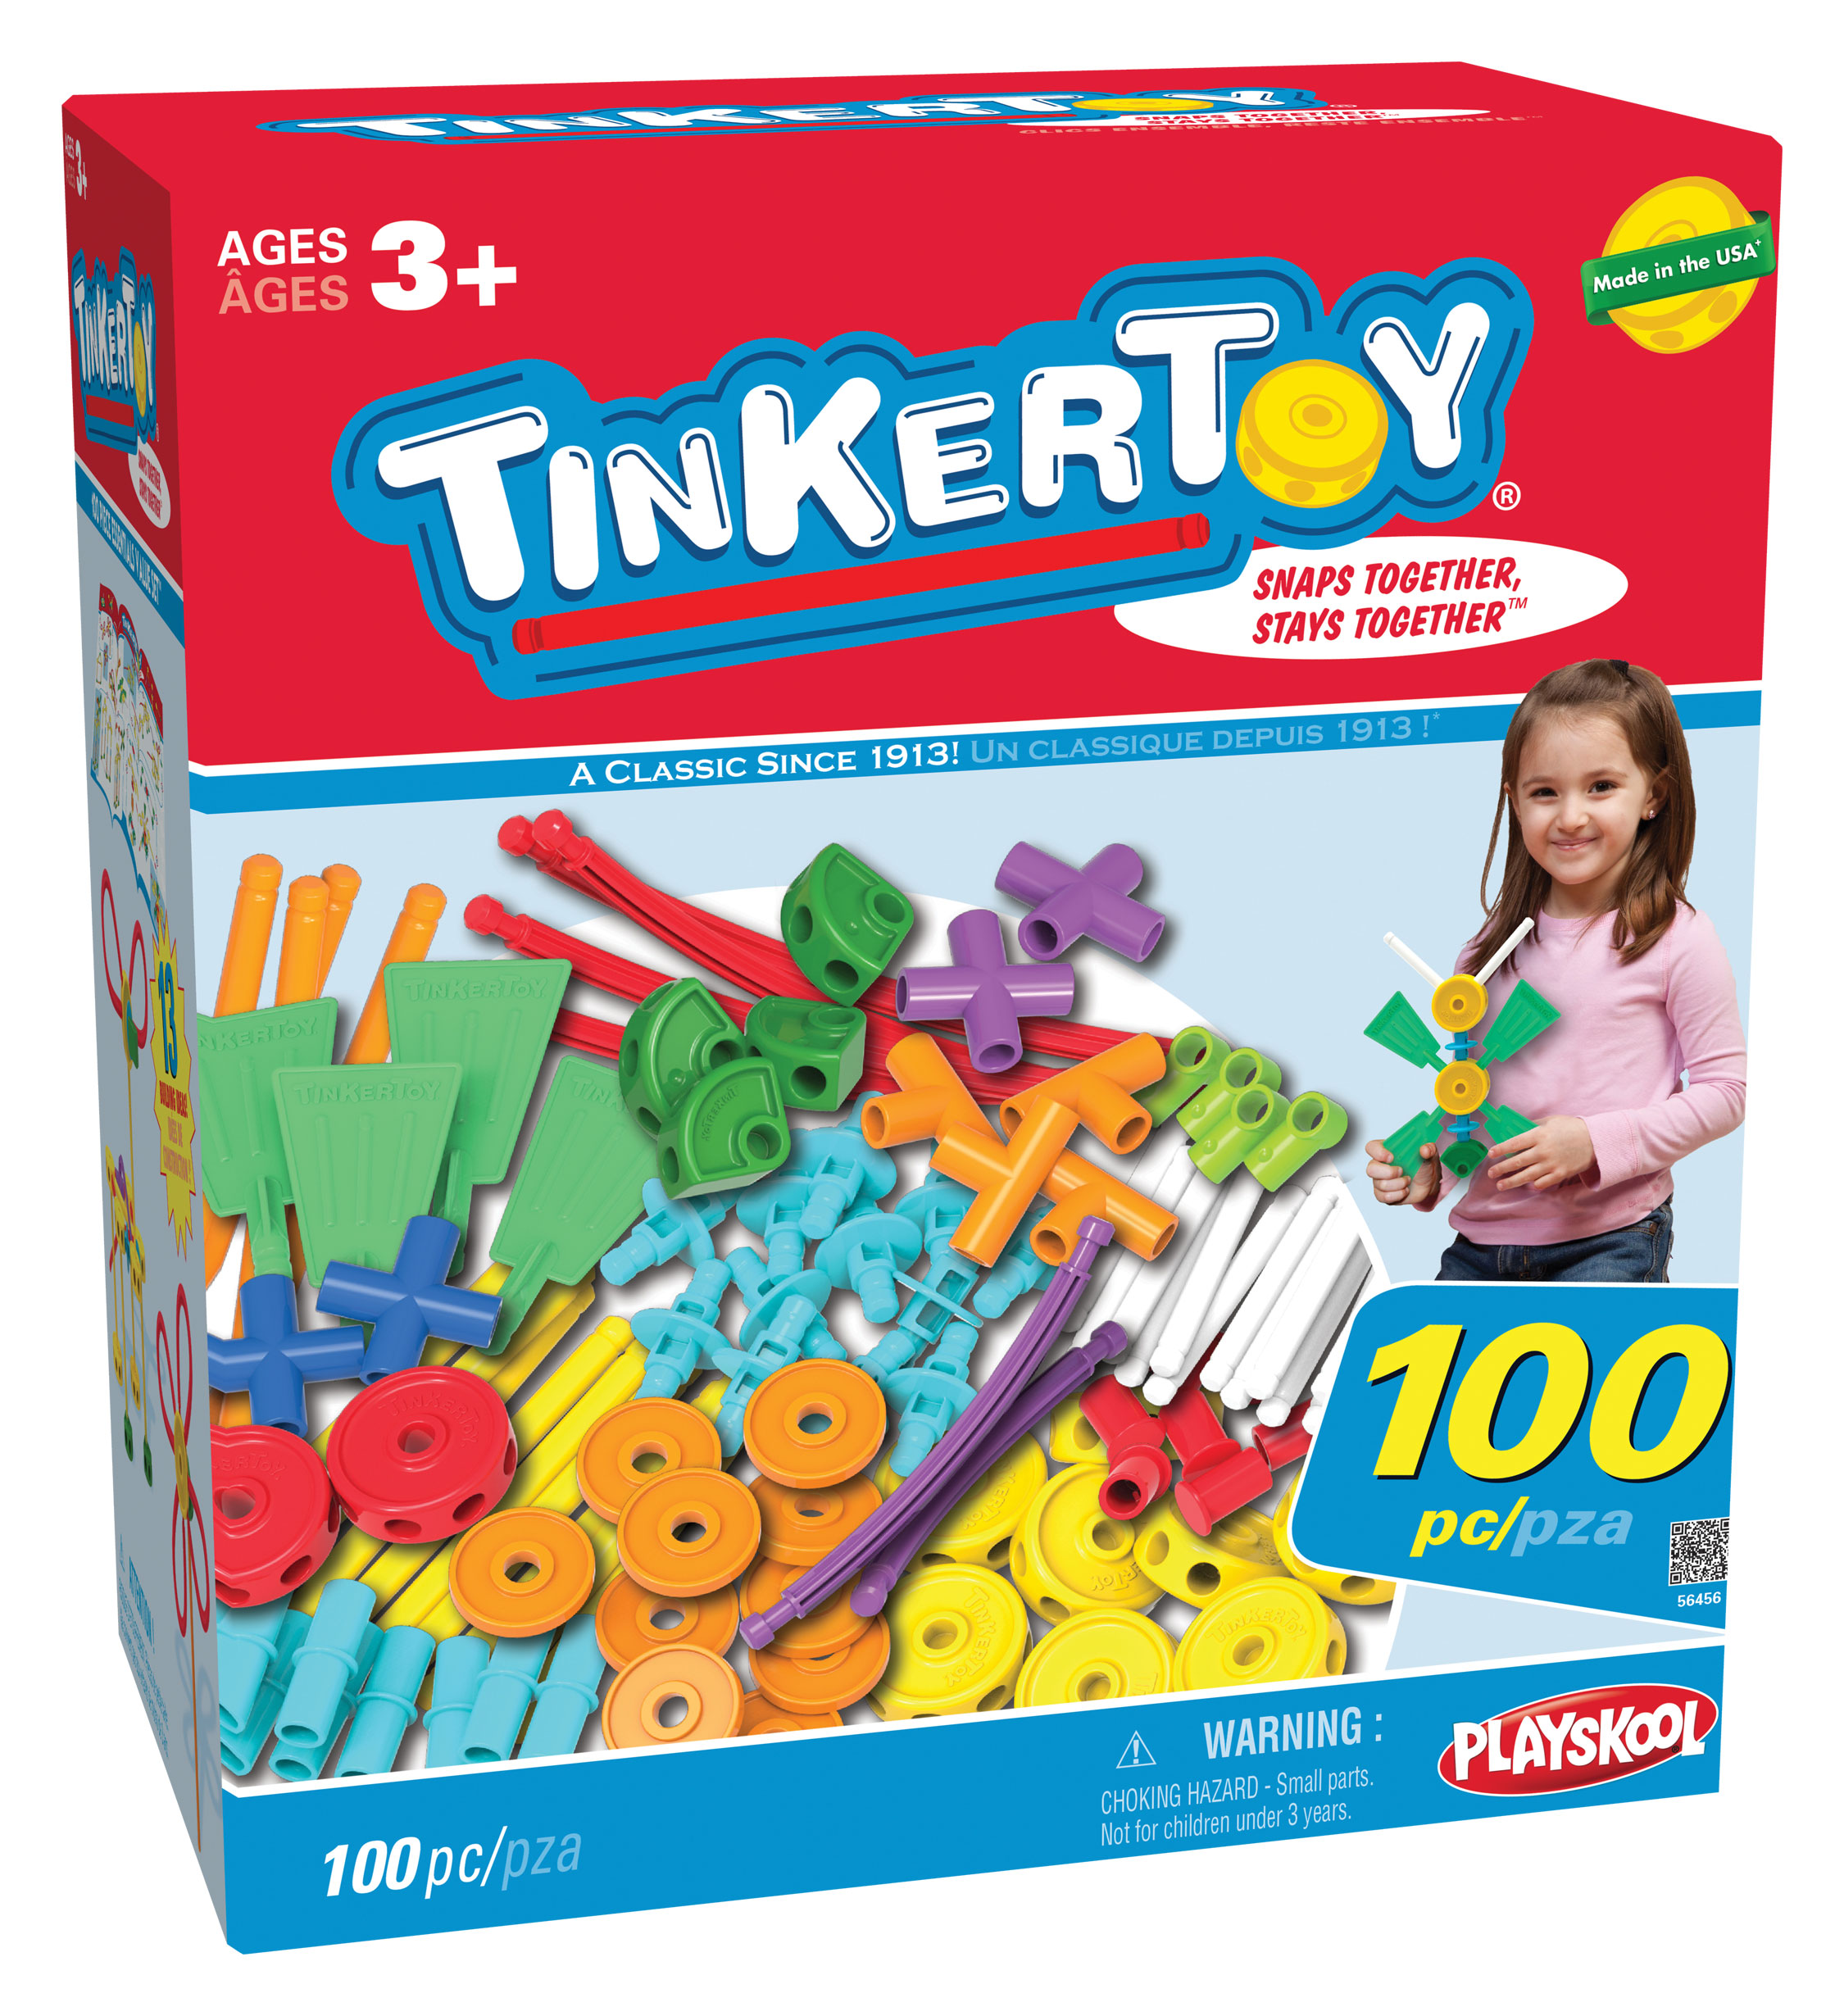 Tinkertoy 100 pc Essentials Set Review & Giveaway